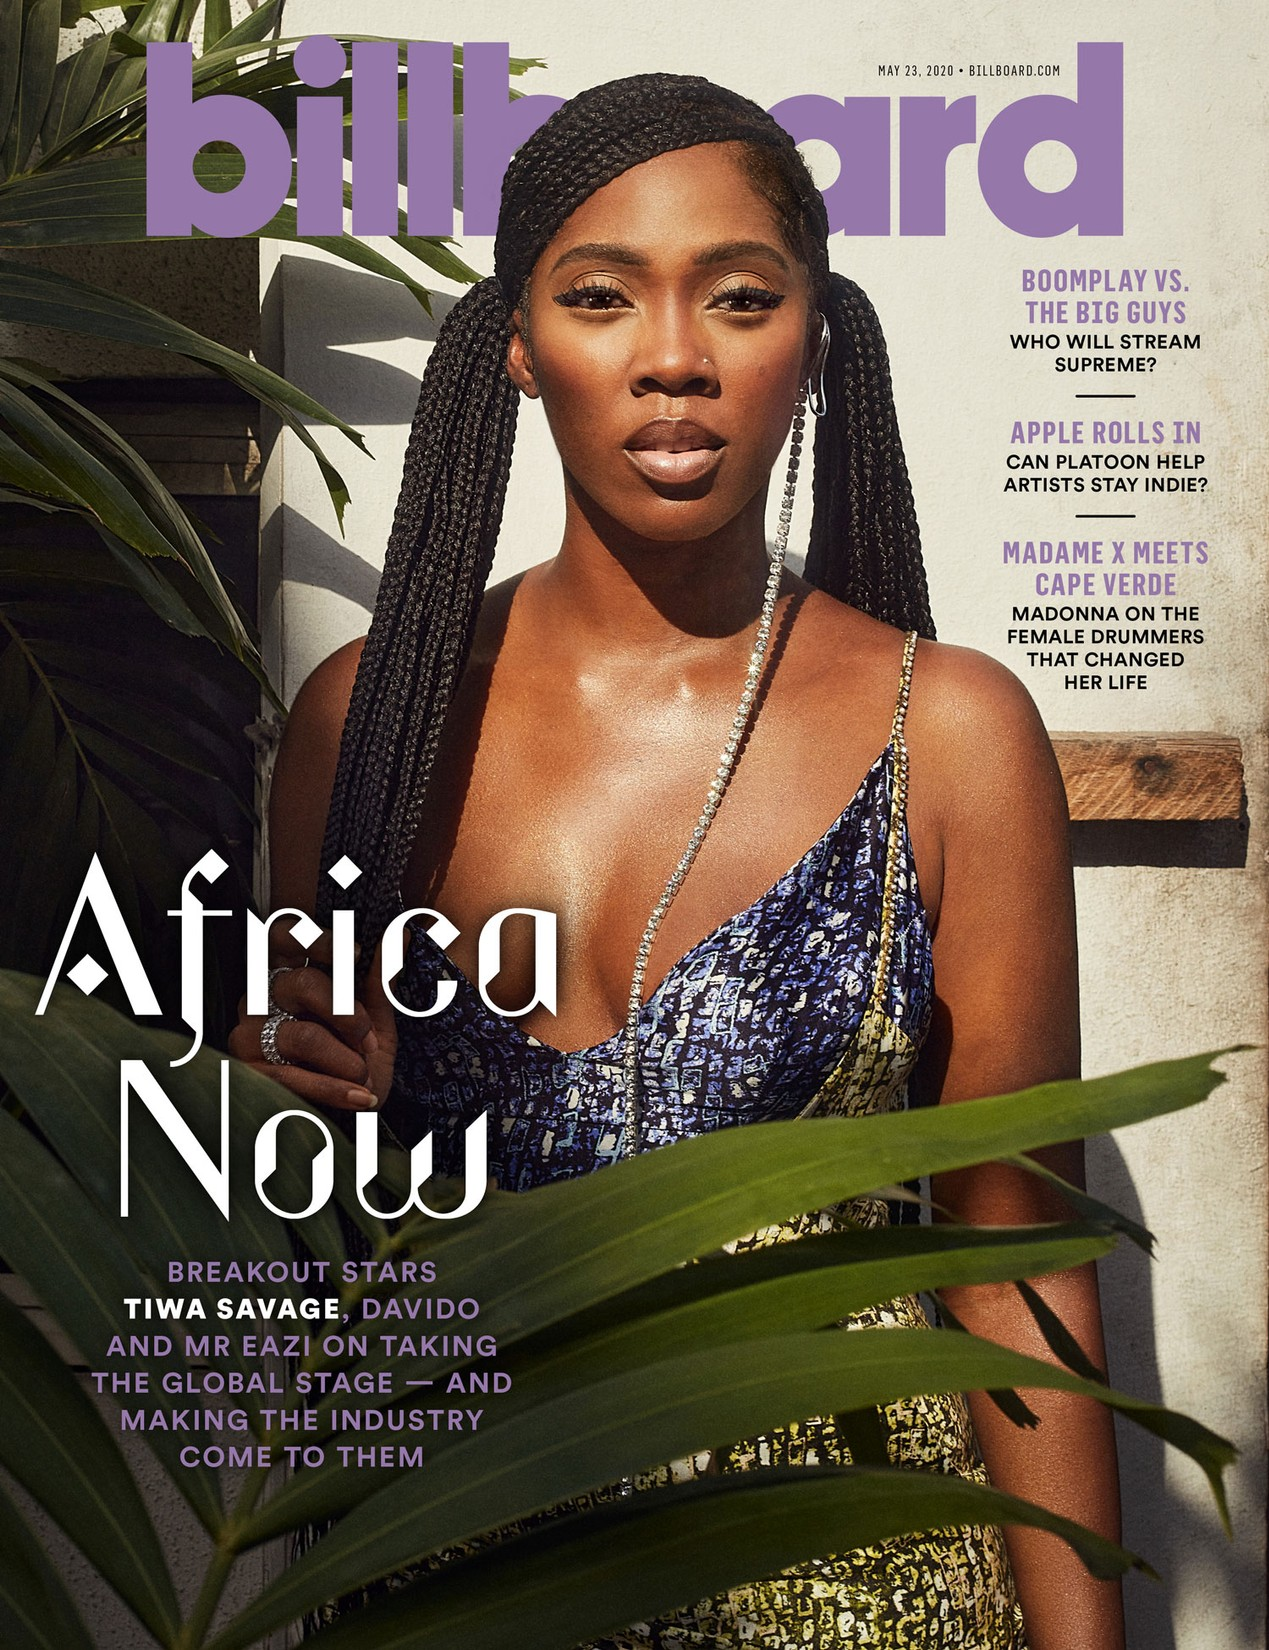 Tiwa Savage, Davido And Mr Eazi Grace The Cover Of Billboard Magazine